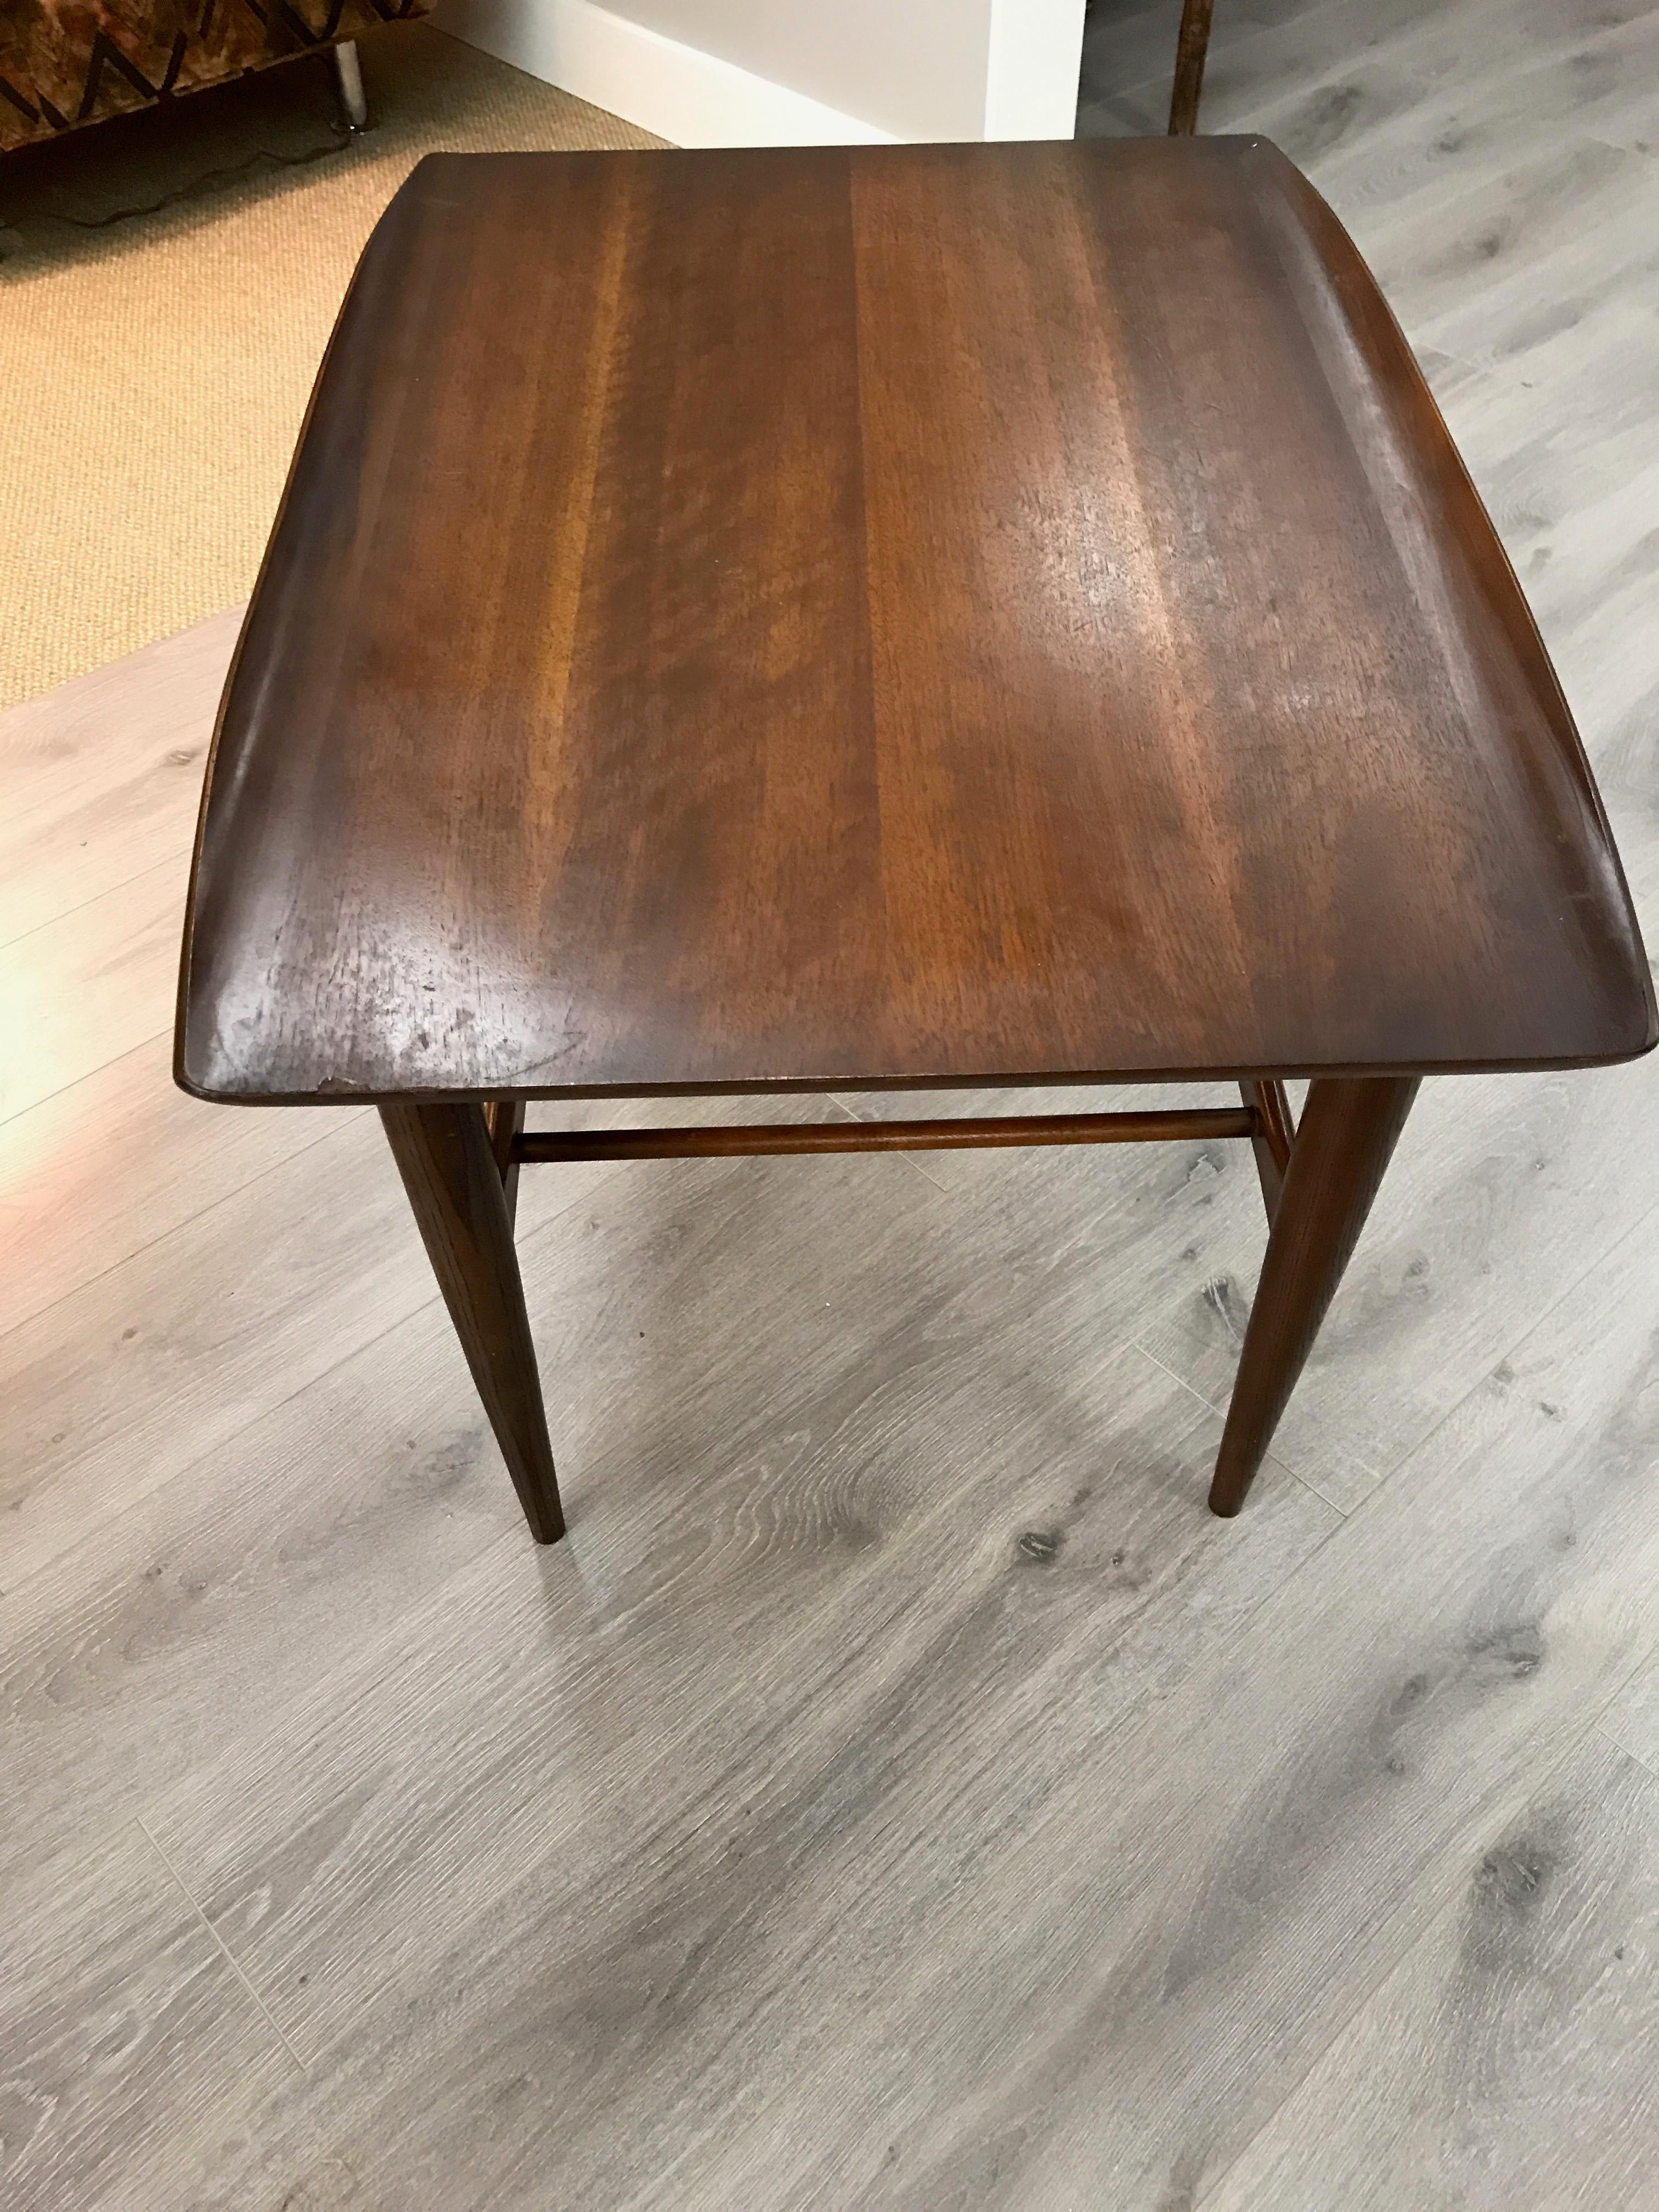 surfboard furniture. Vintage Bassett Furniture Industries IN Danish Inspired Wood Surfboard Style Side Table - Image 5 Of A